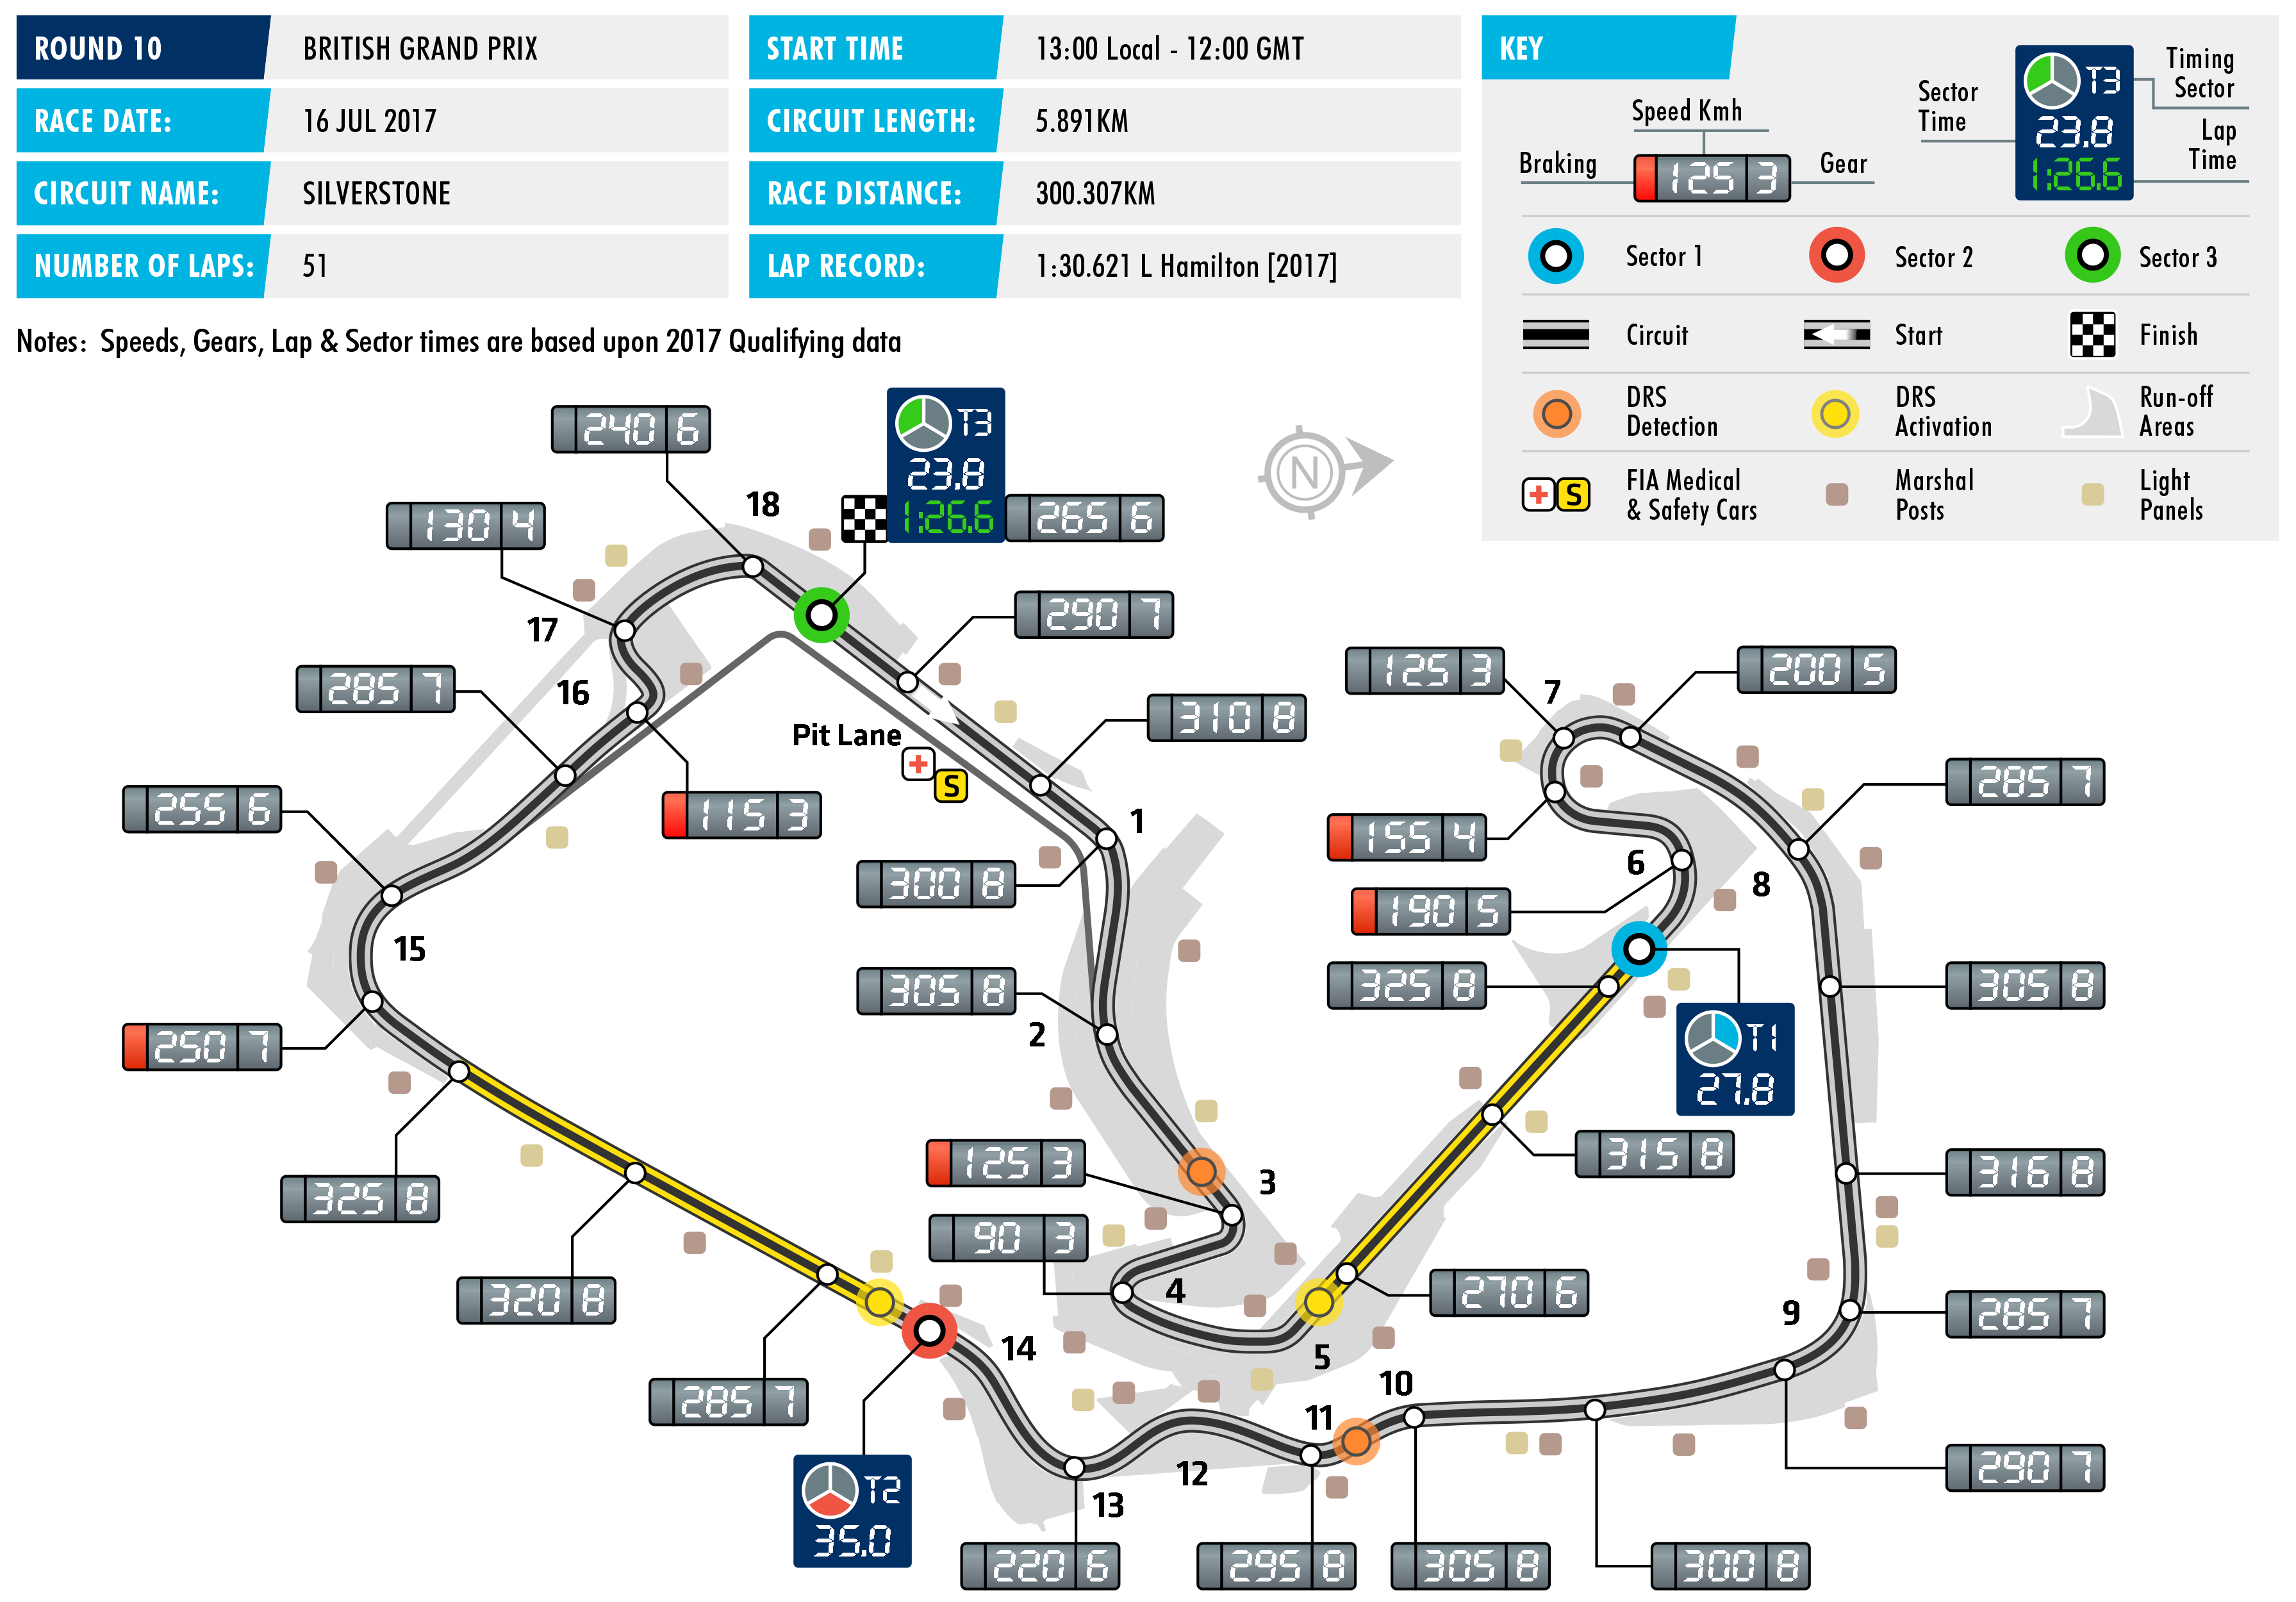 https://www.fia.com/sites/default/files/styles/panopoly_image_original/public/10-britain-circuit.png?itok=k6_Ihyky